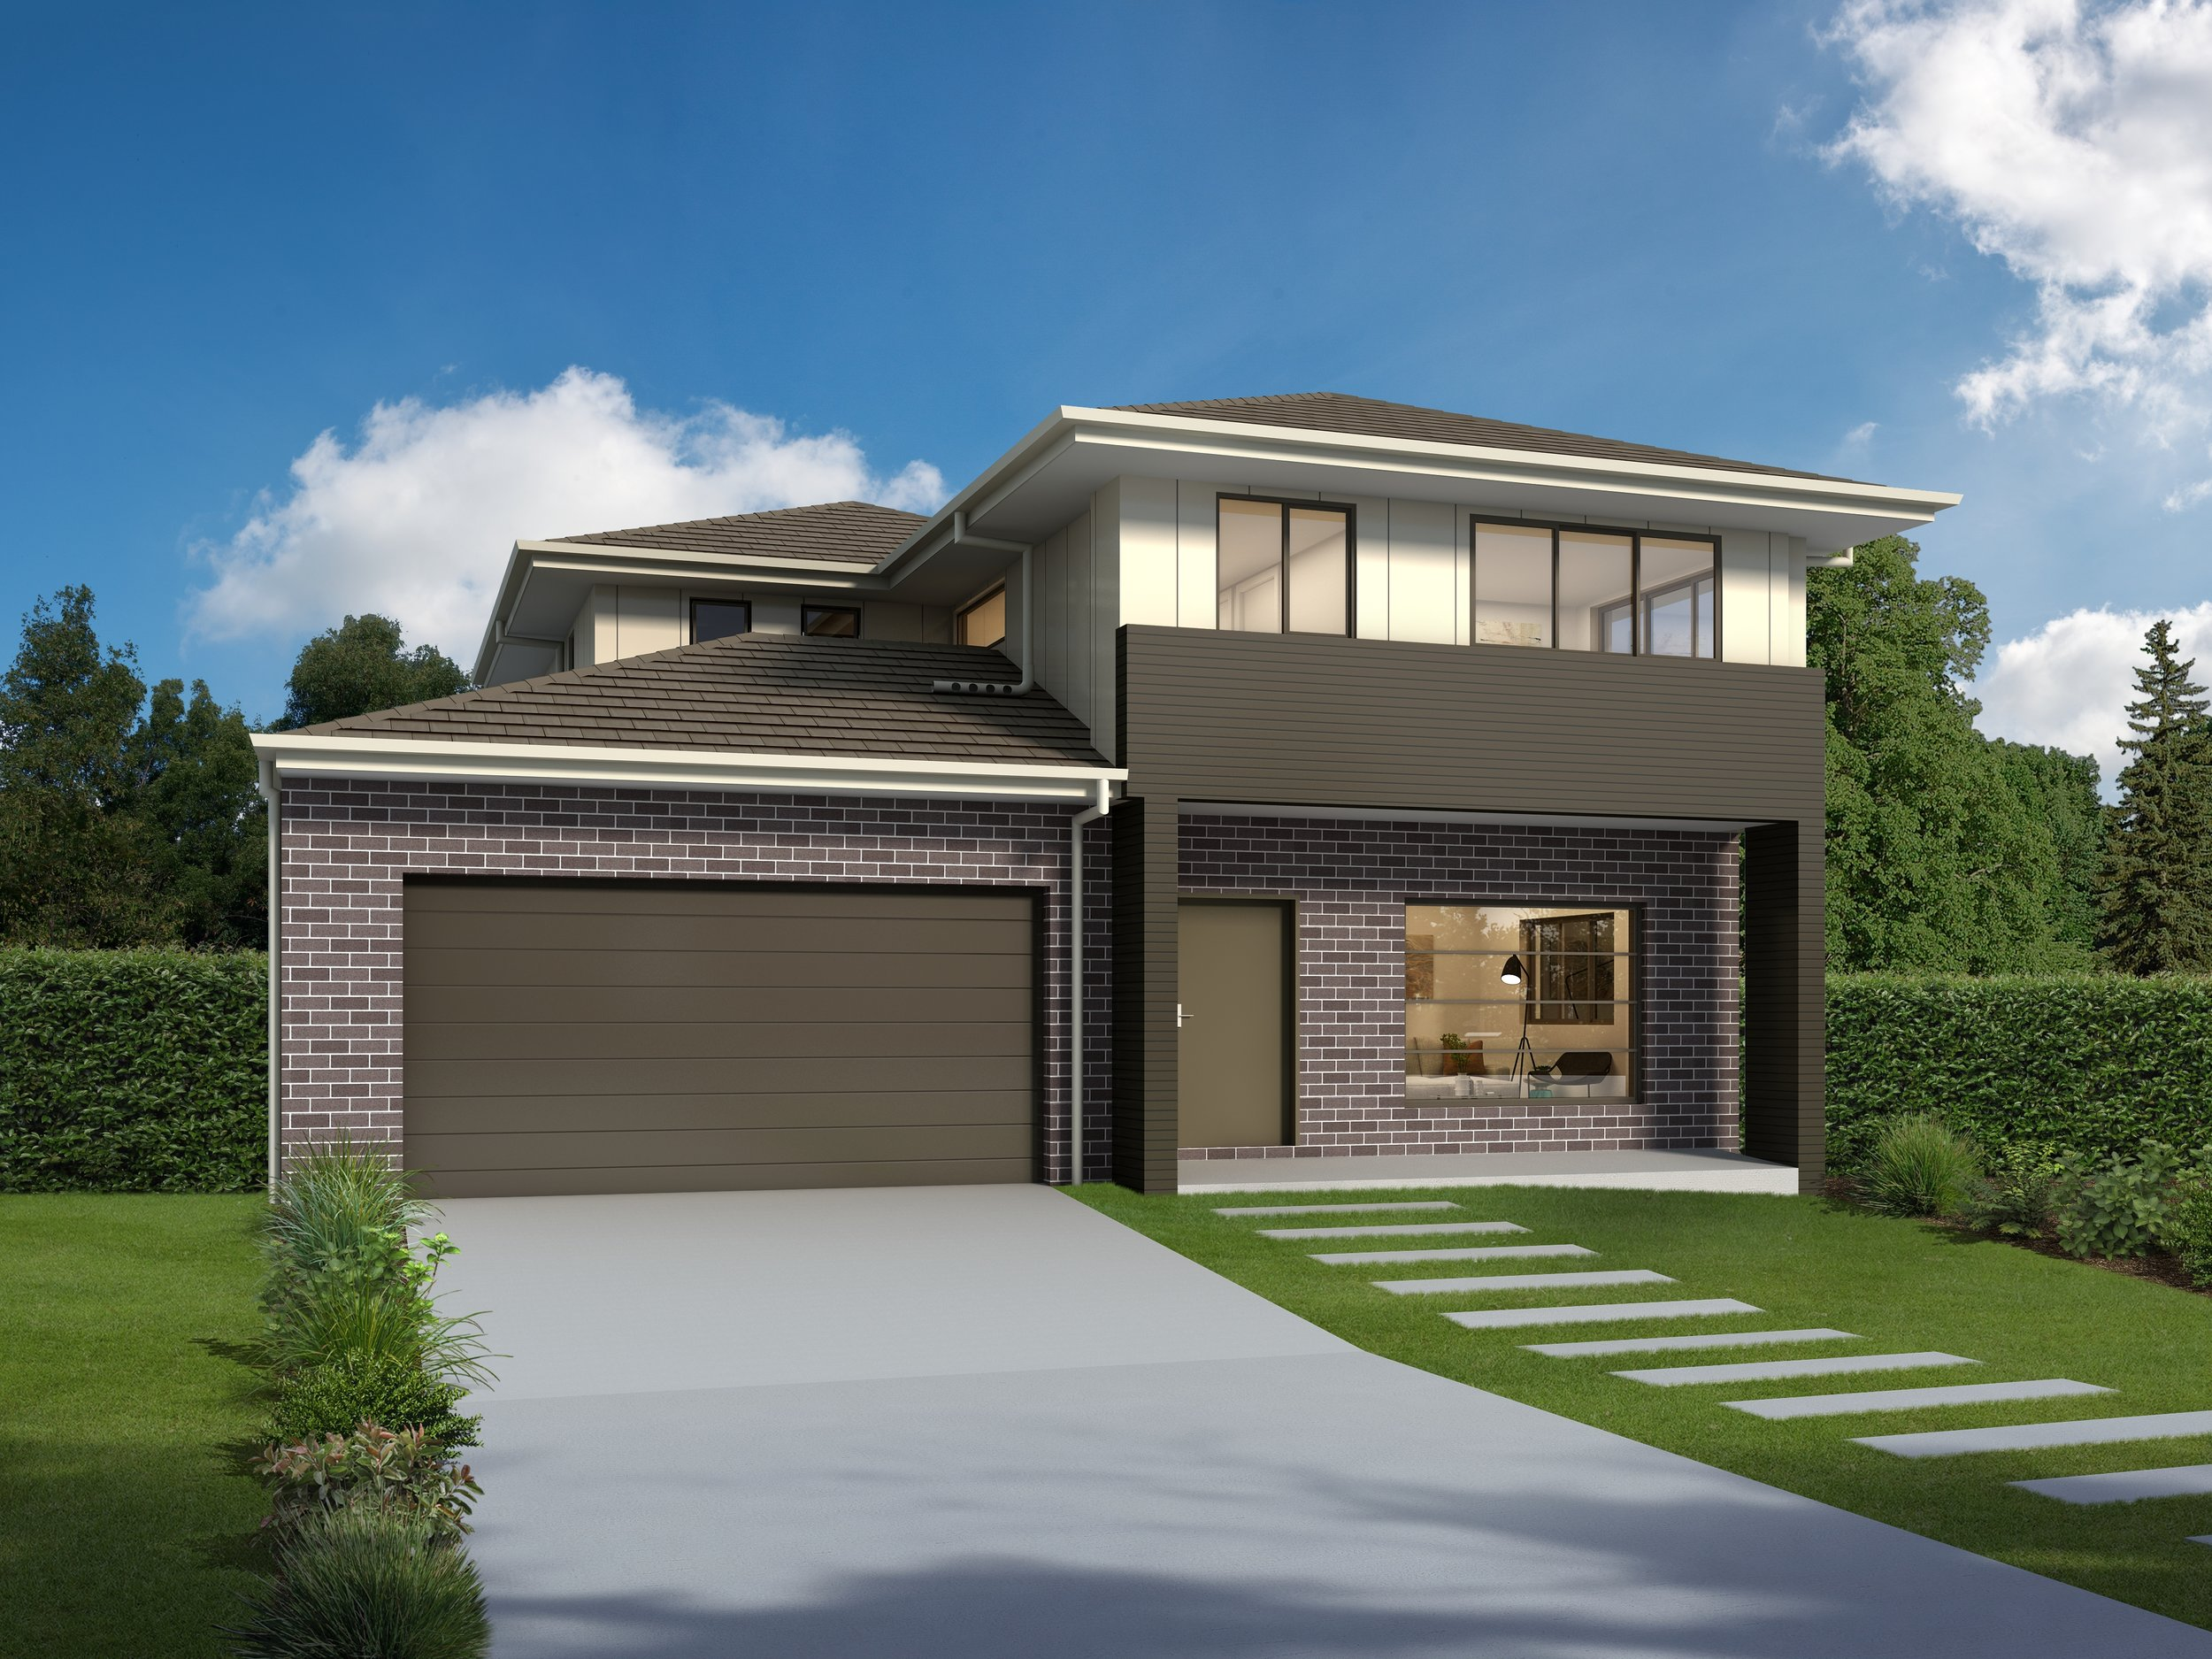 2435 32 Home Facade Package S11255 1014 T5004.jpg